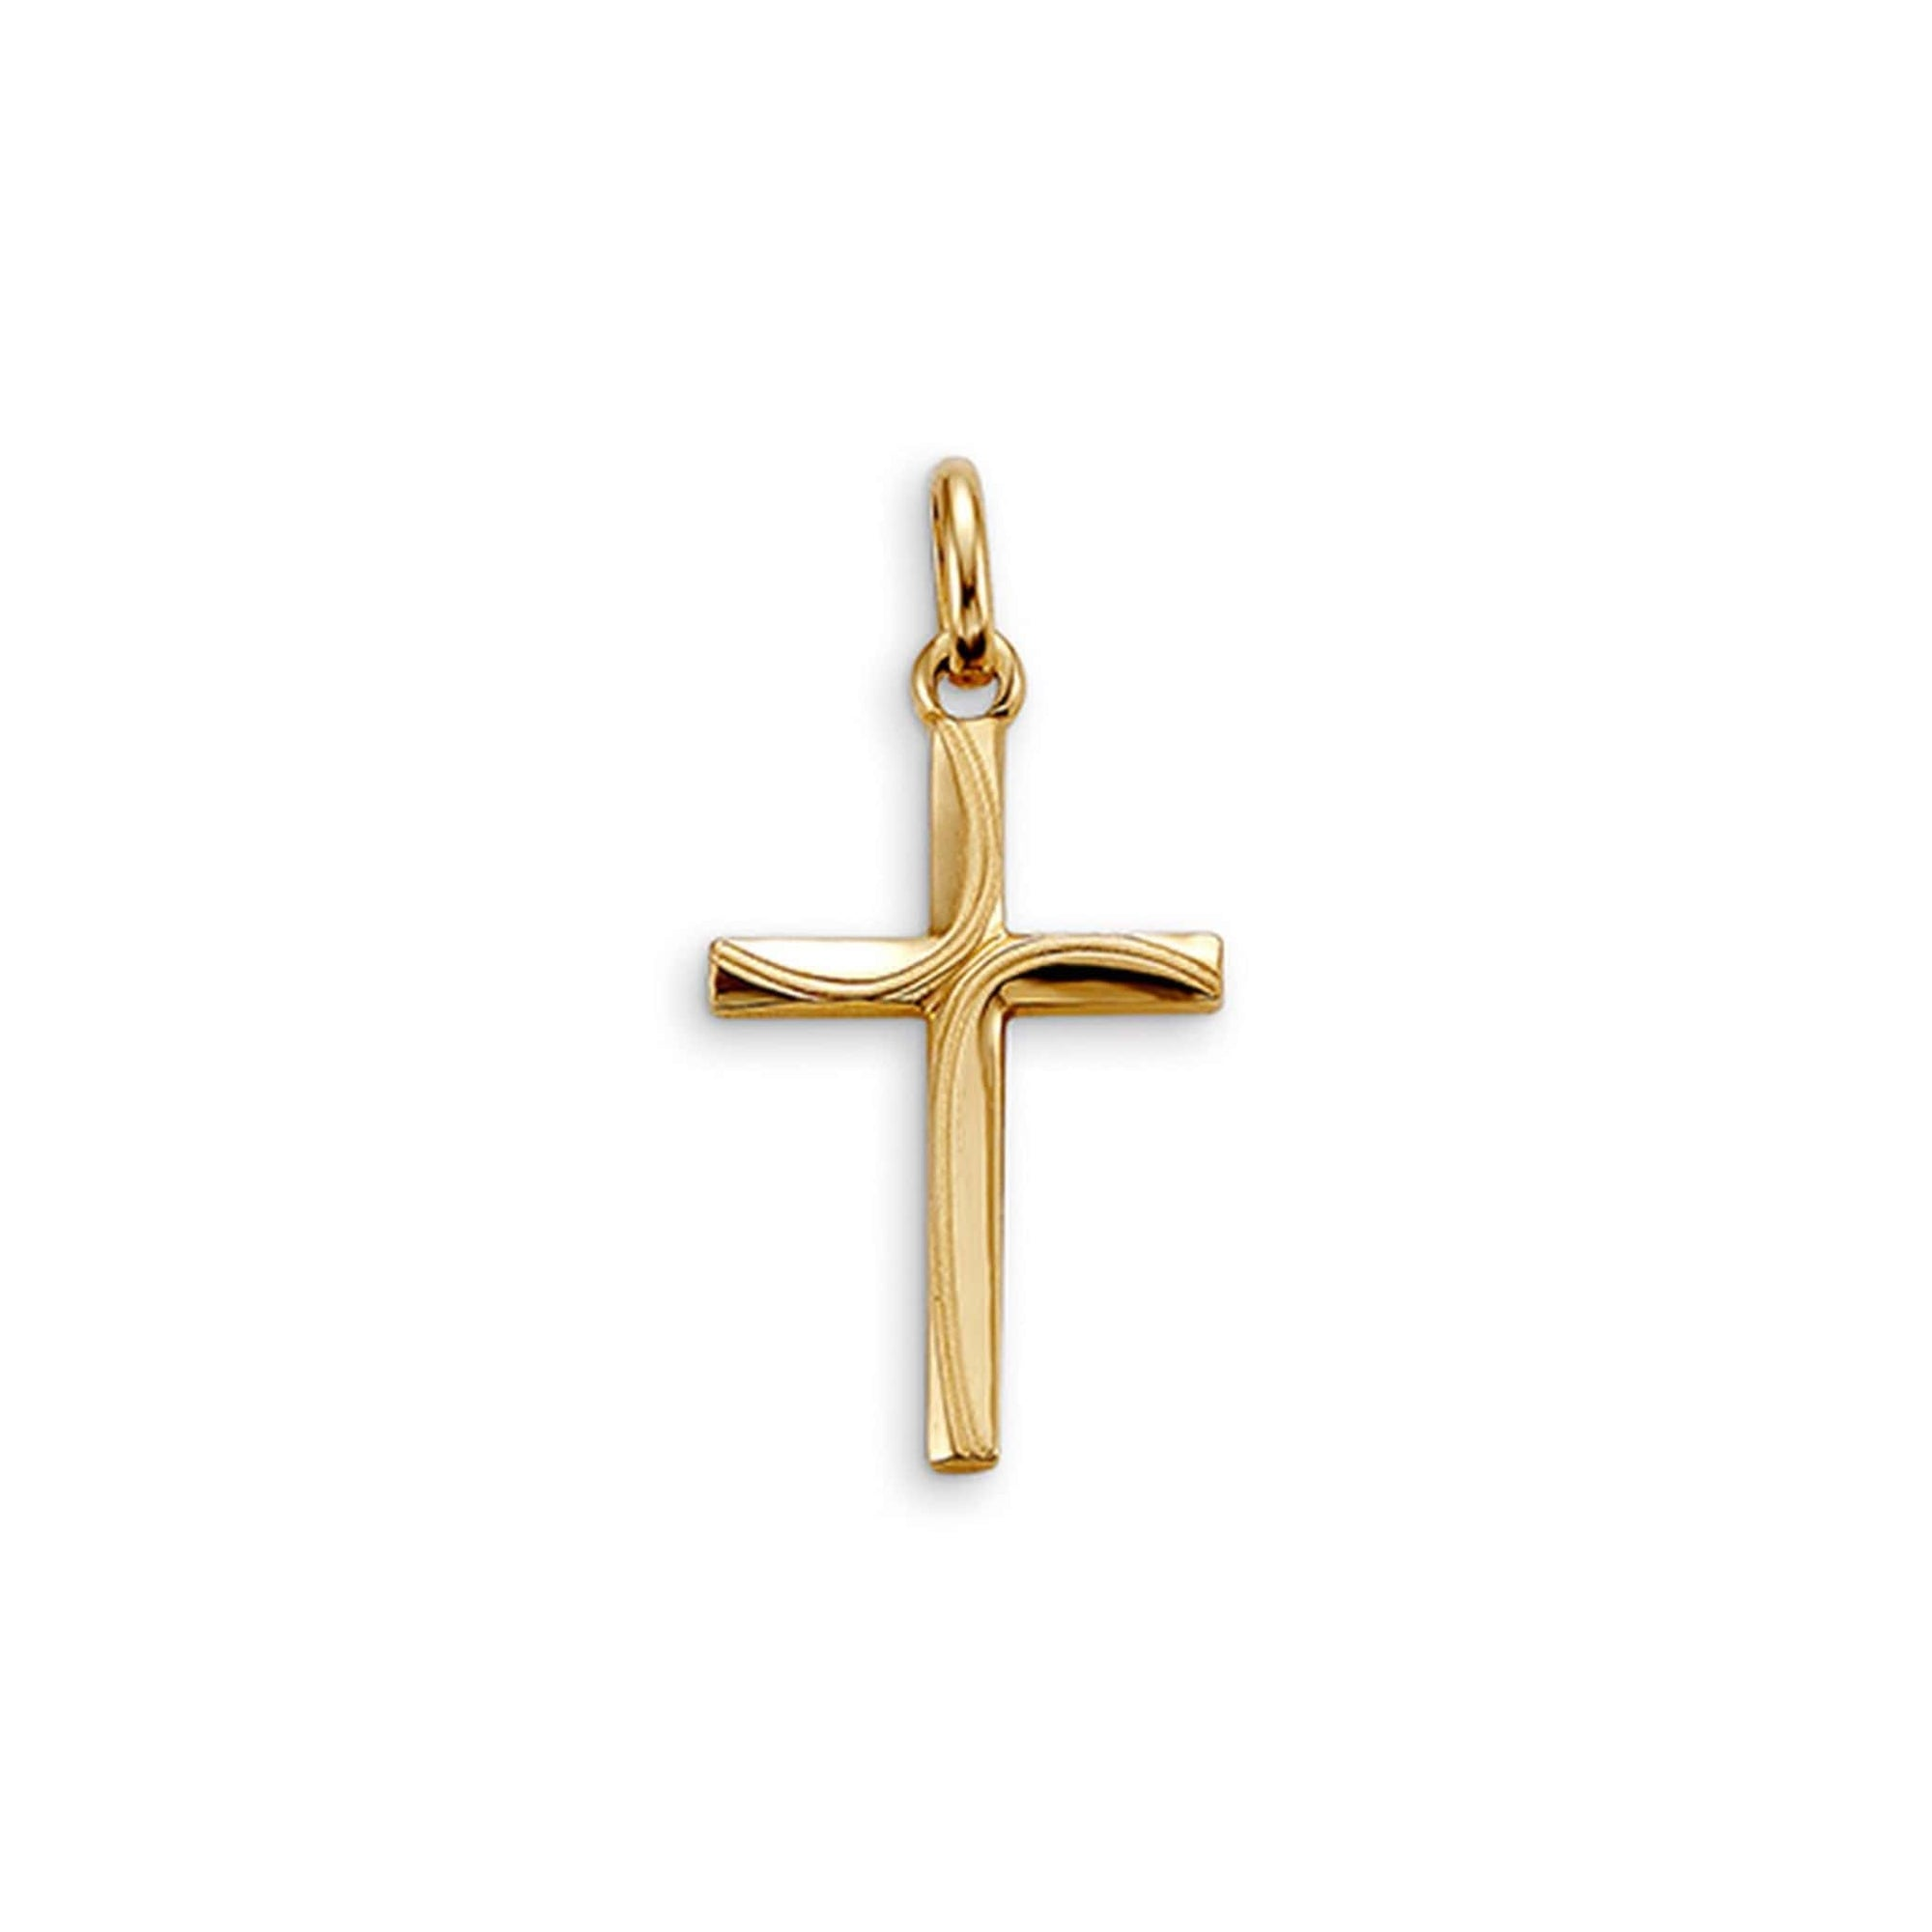 10K Yellow Gold Detailed Cross Pendant at Arman's Jewellers